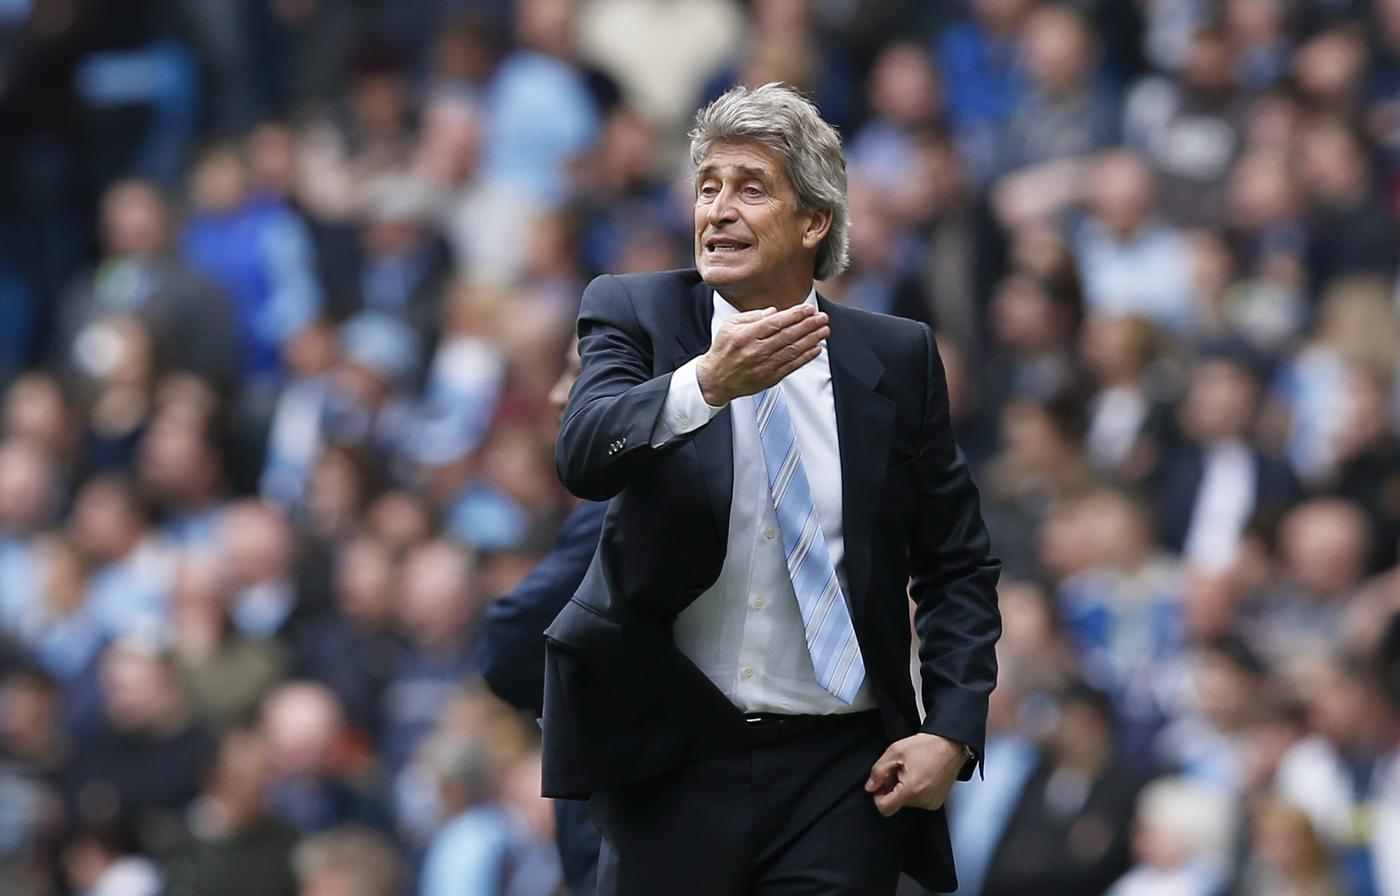 Pragmatism is required if Manuel Pellegrini is to remain in charge at Manchester City